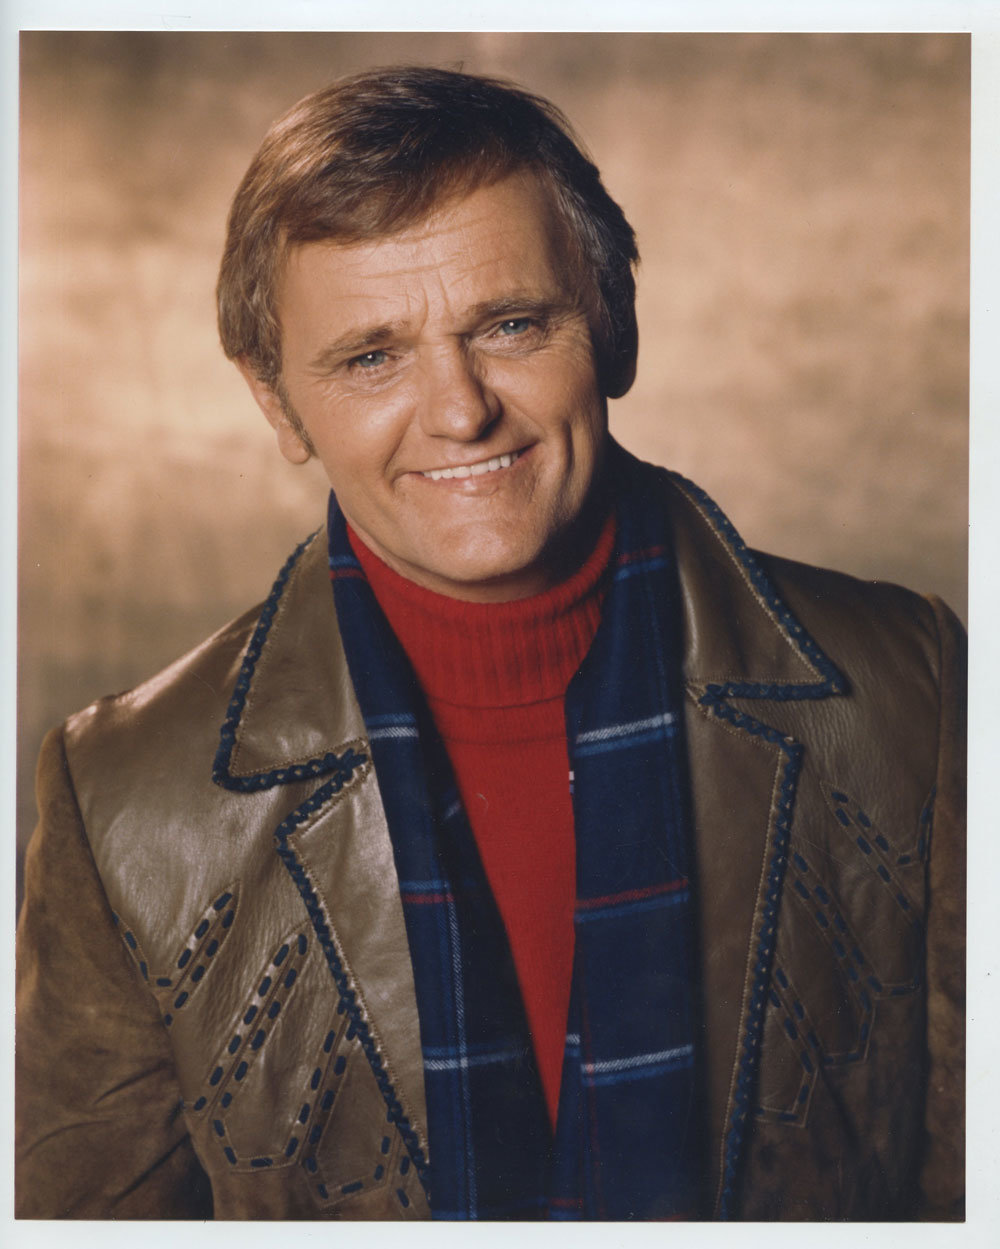 Jerry Reed Photo 1980s Publicity Promo